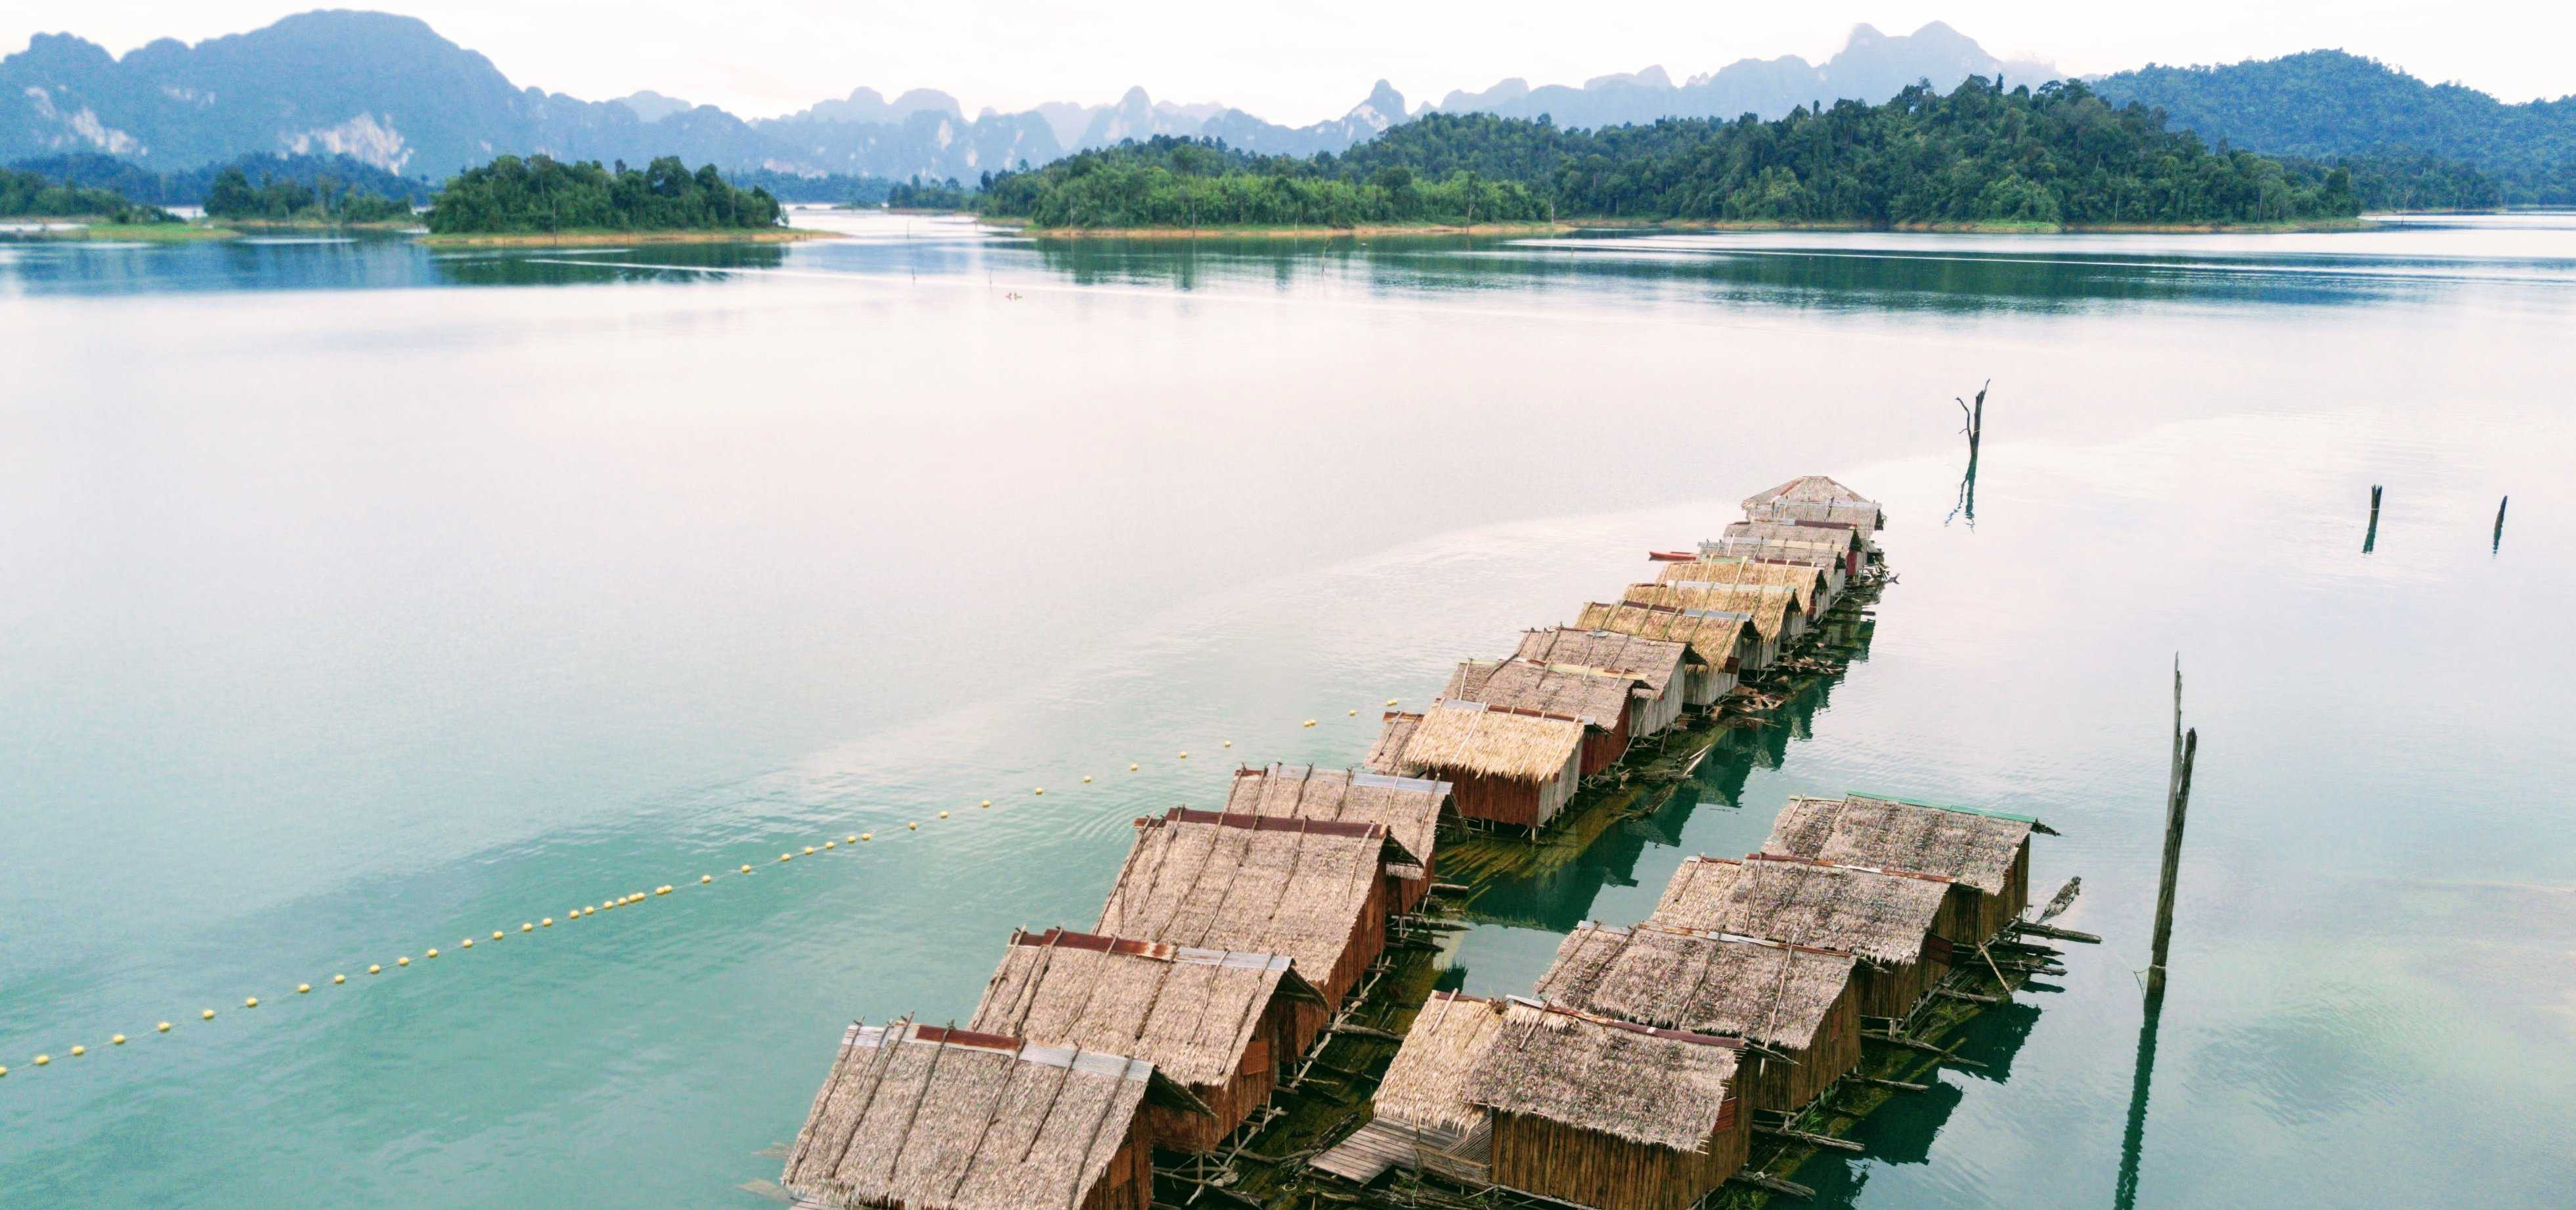 Khao Sok - Basic floating huts on the lake